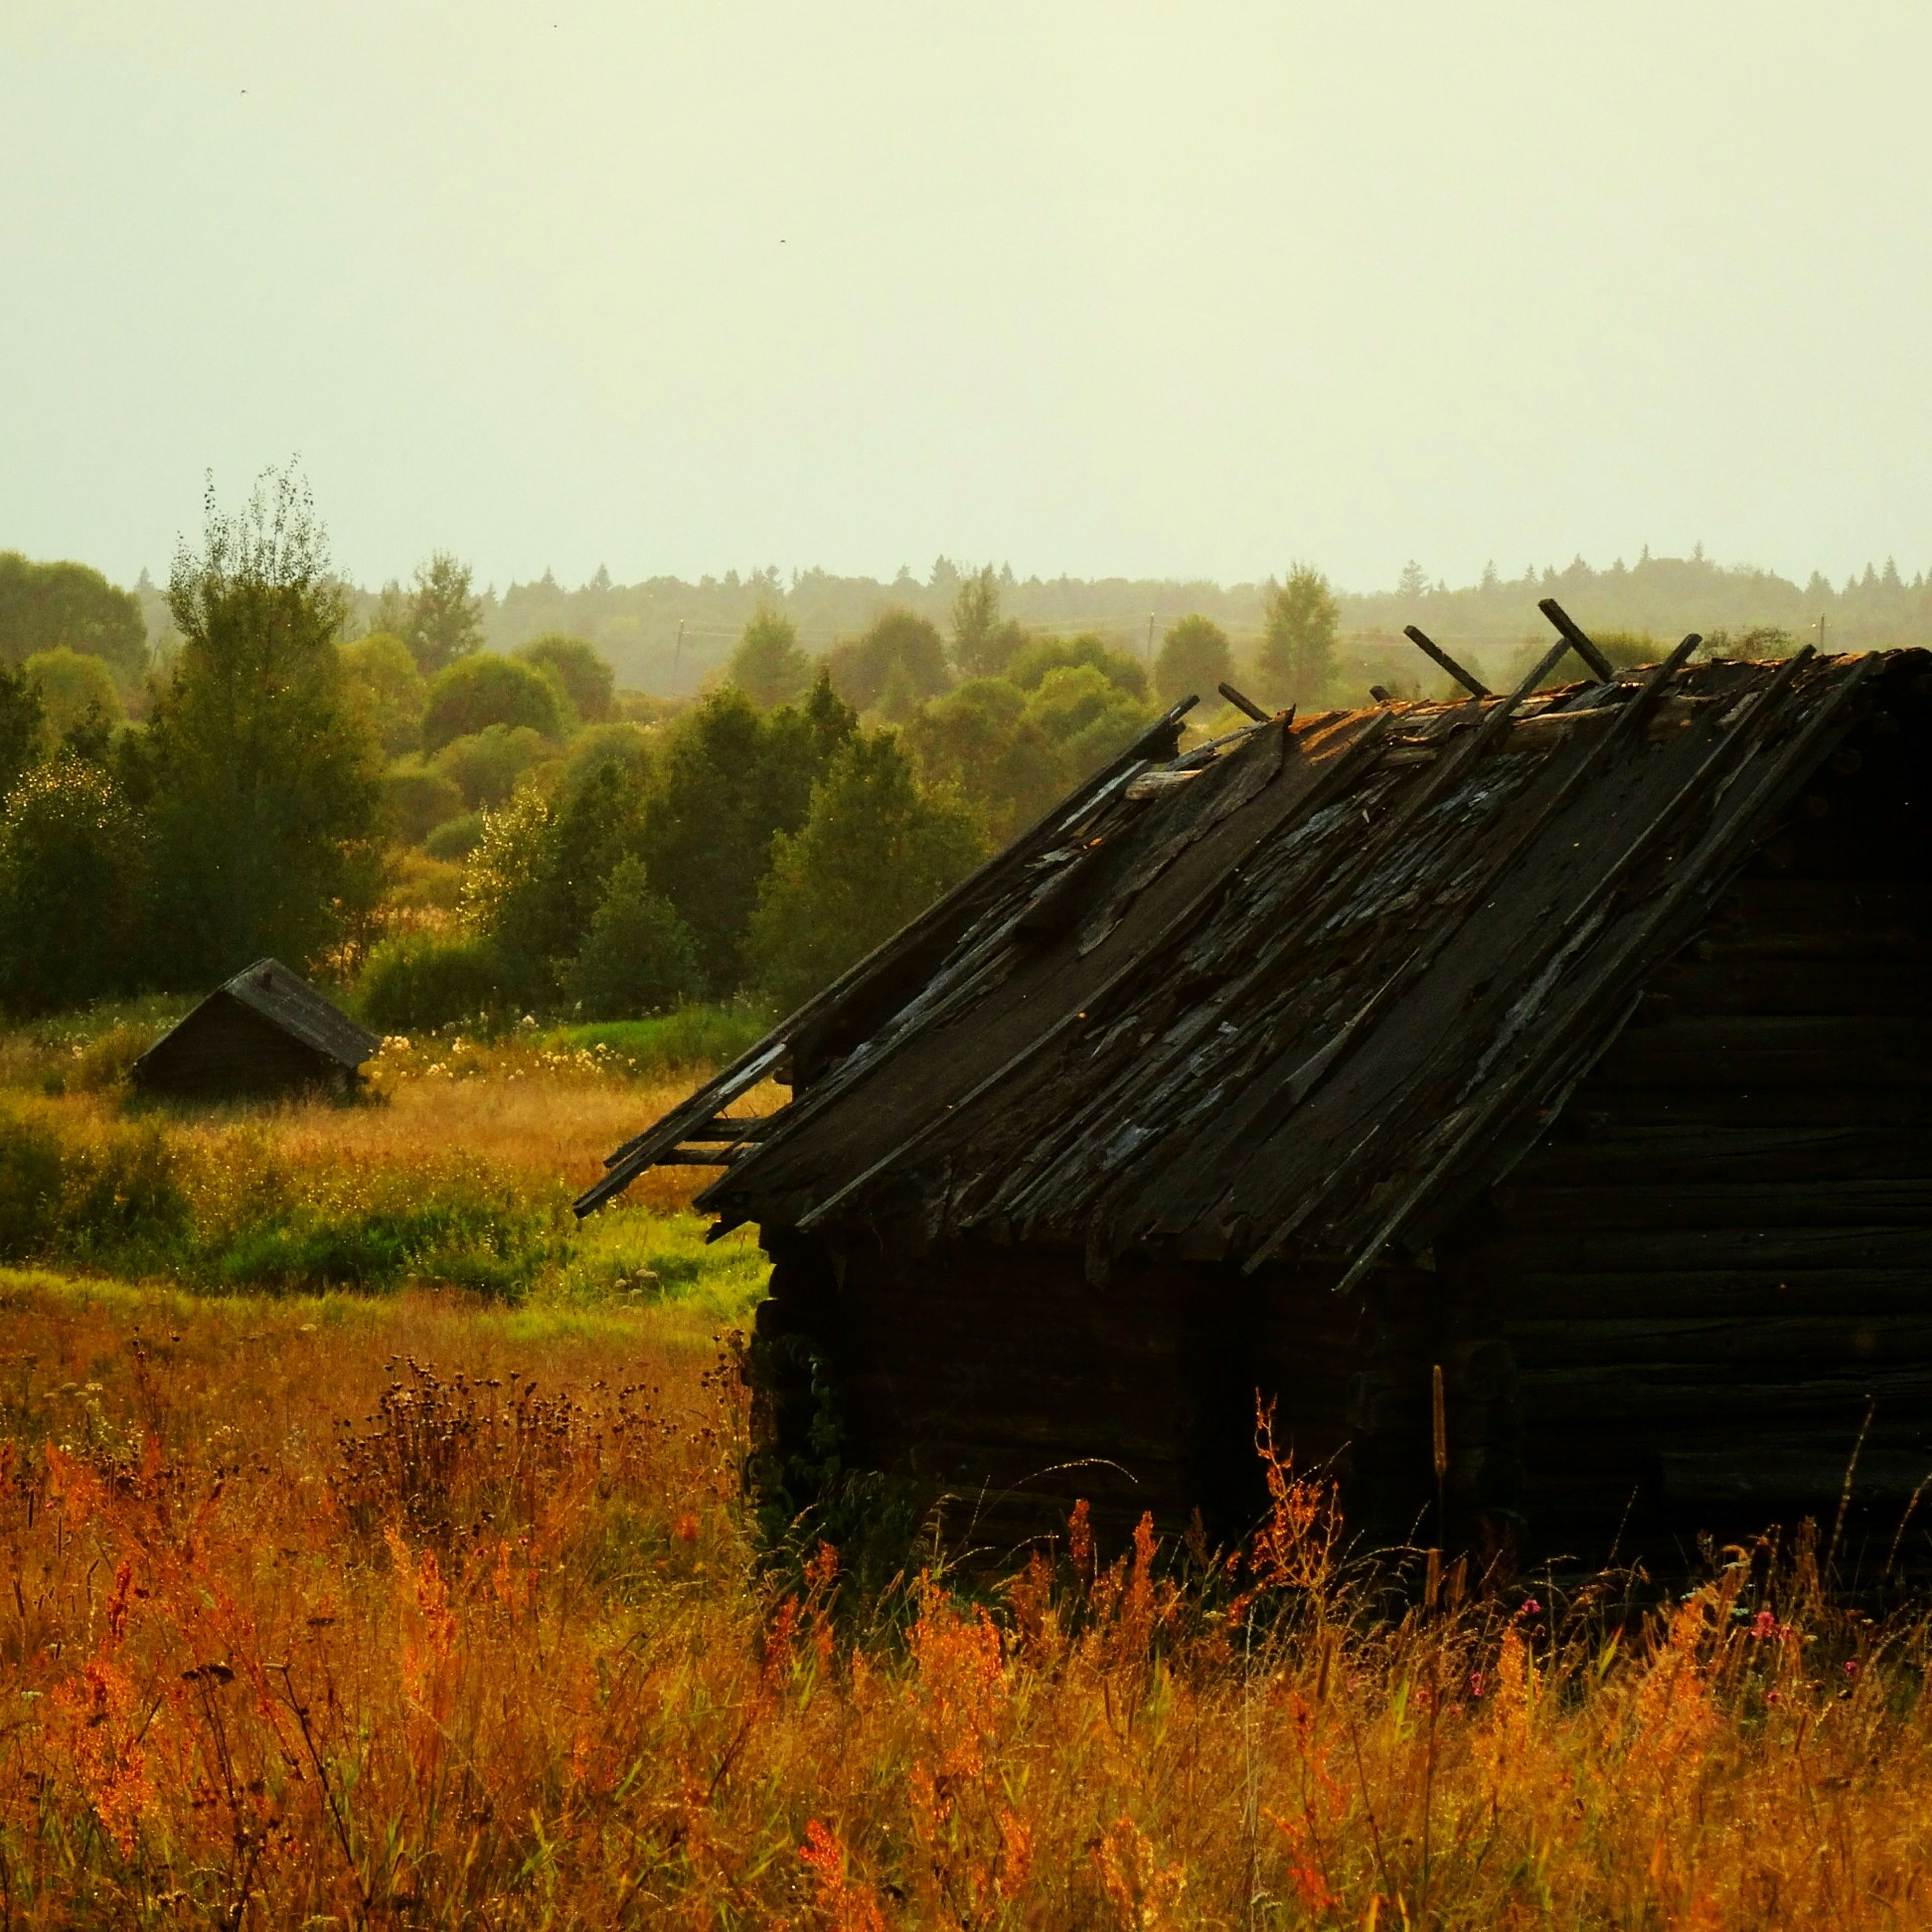 field, grass, clear sky, rural scene, landscape, wood - material, abandoned, agriculture, plant, growth, tranquility, farm, nature, tranquil scene, copy space, built structure, old, house, day, damaged